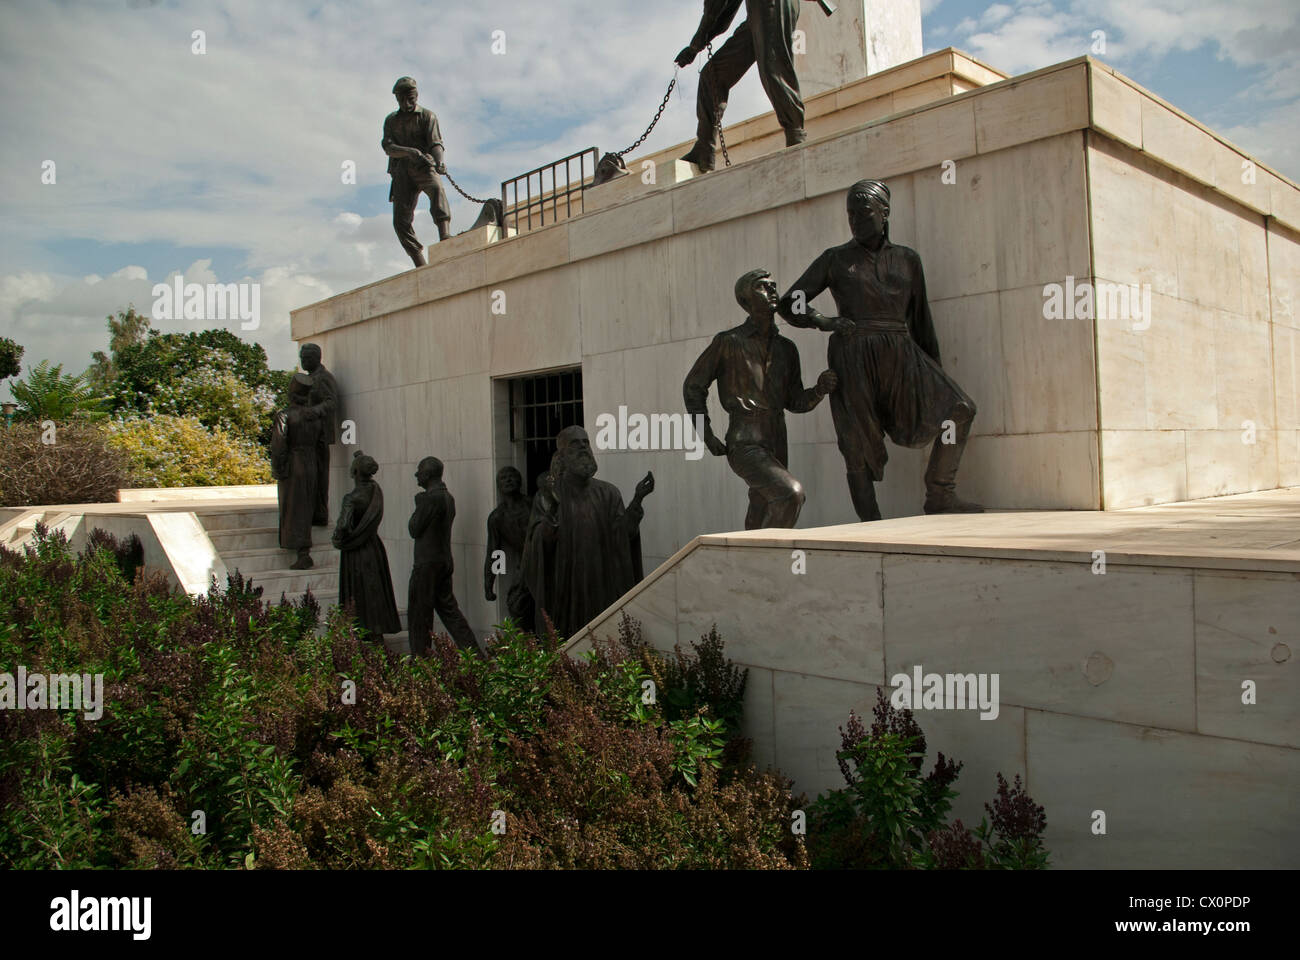 Liberty Monument 1973 to commemorate EOKA release from prison in 1959 and British rule - Stock Image